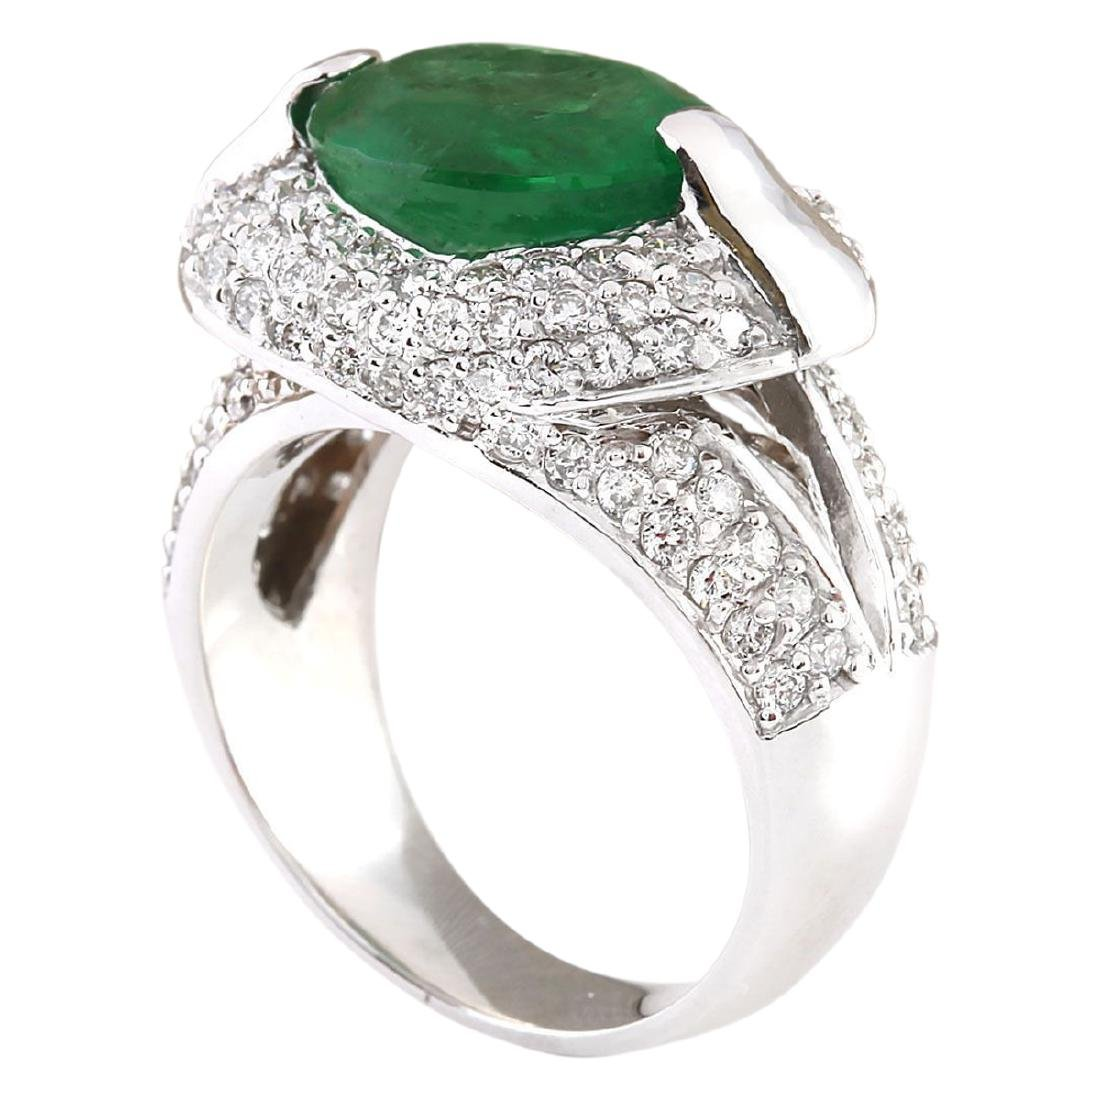 5.08 CTW Natural Emerald And Diamond Ring In 18K White - 3